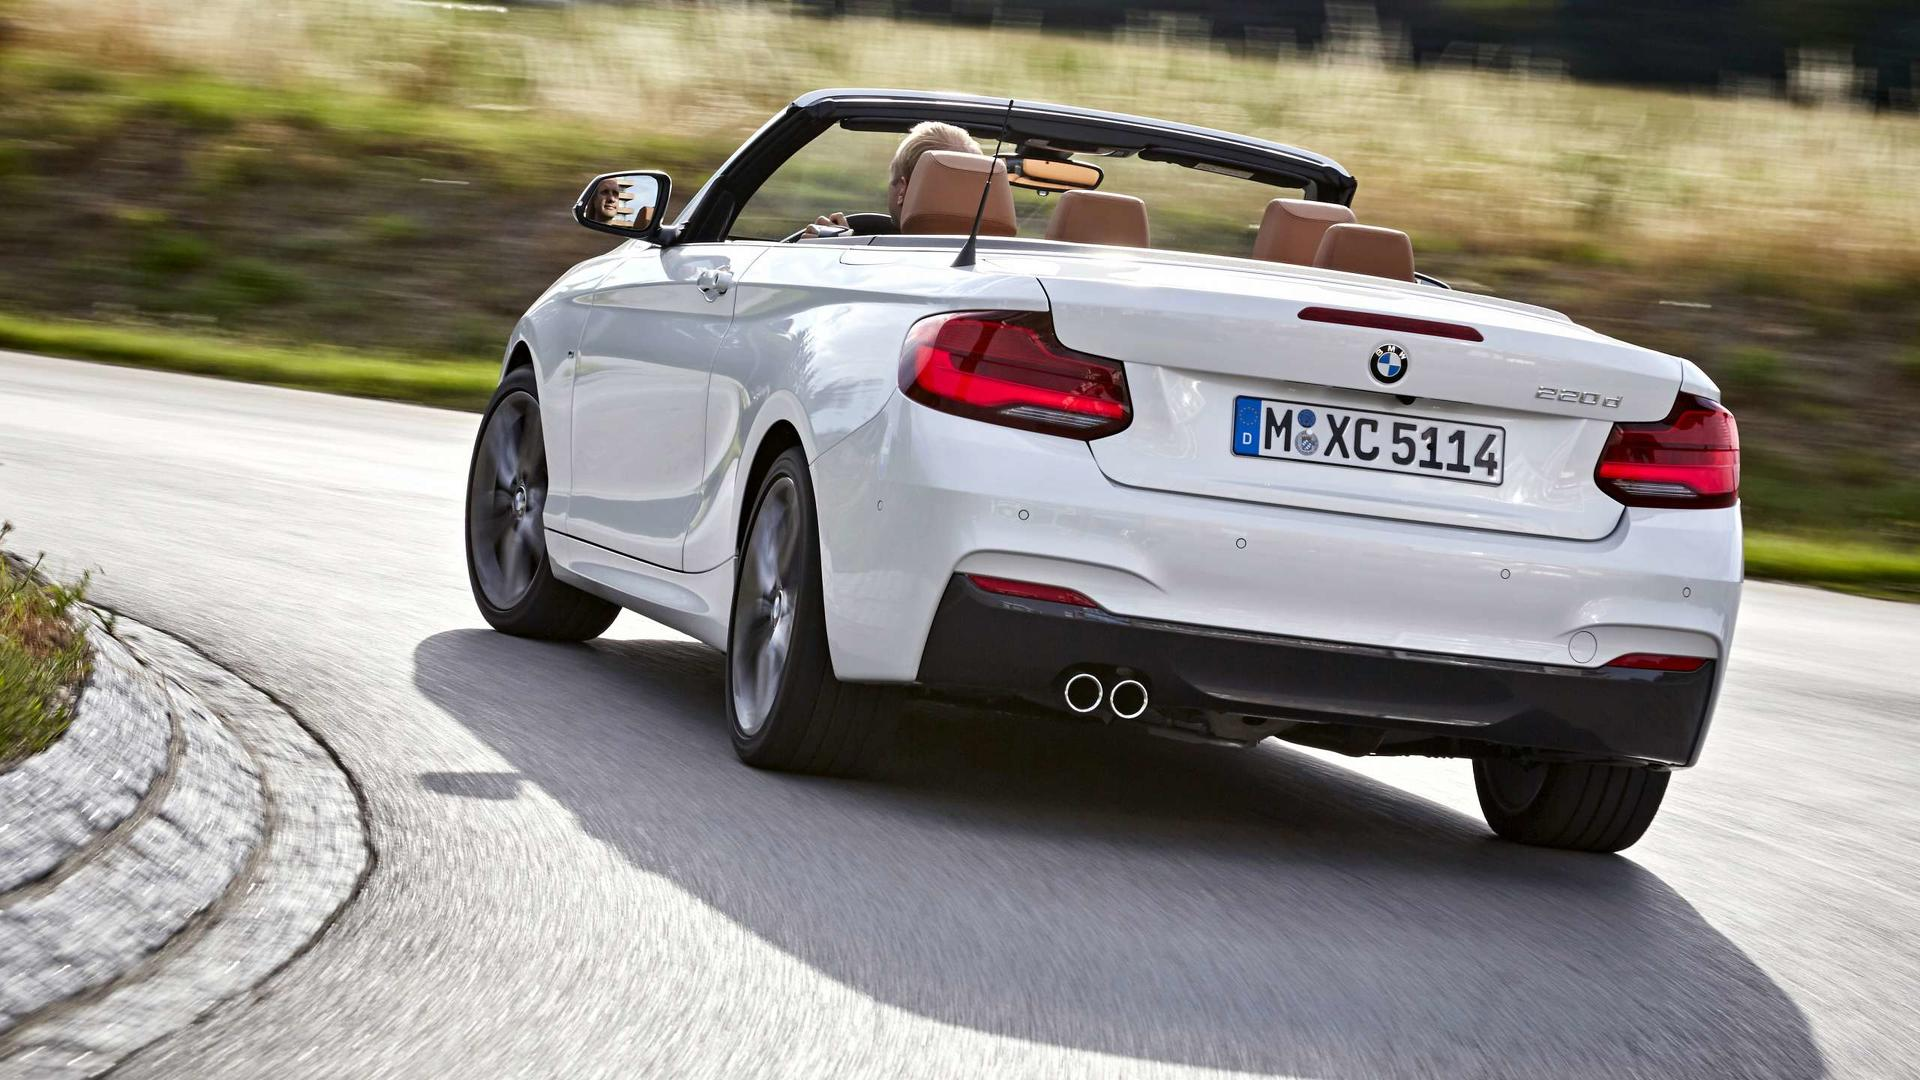 vehicles series xdrive a north cosy america convertible convertibles bmw